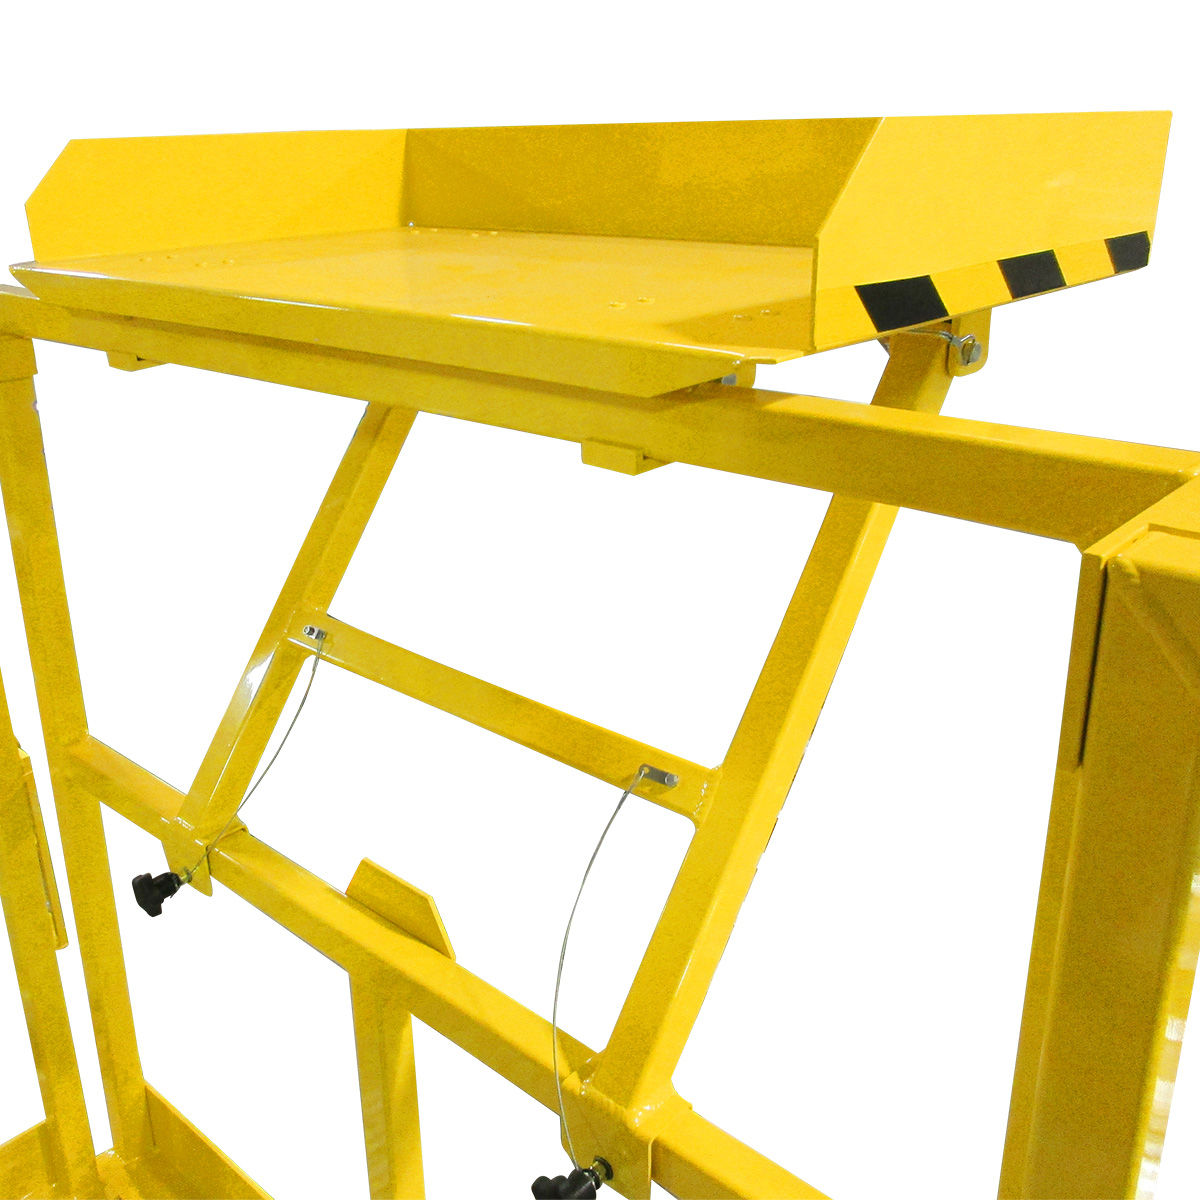 Laptop and tool trays which fold away when needed on Spika's 100% OSHA compliant work platforms and mobile work stands.